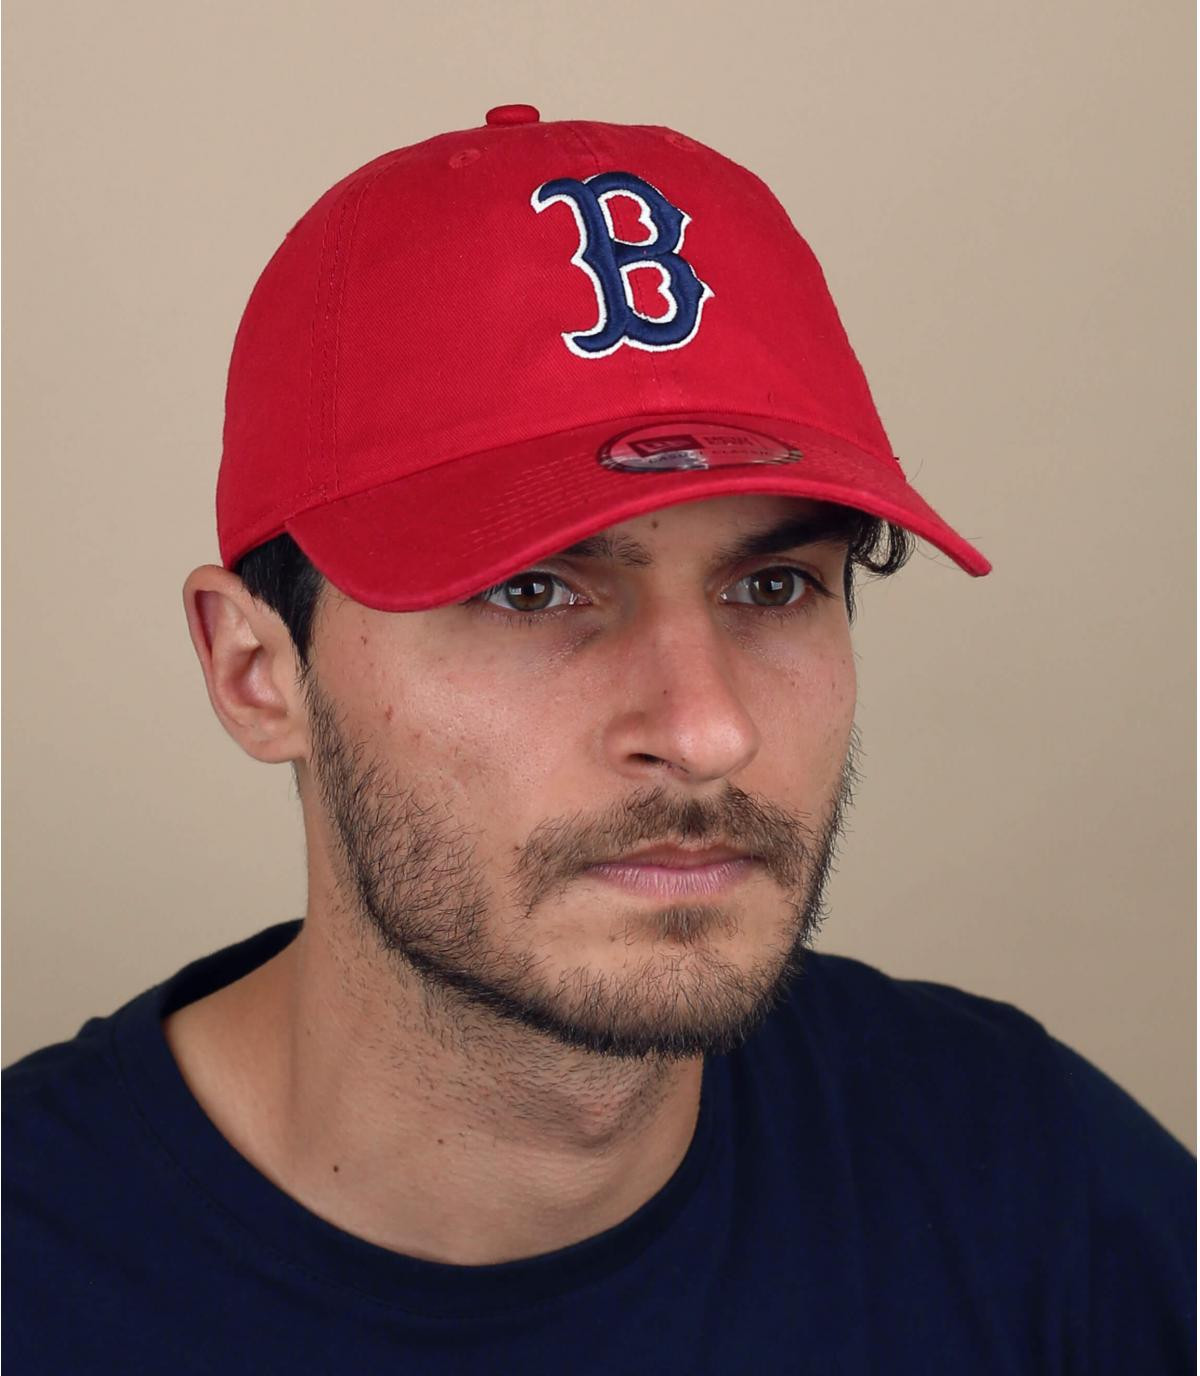 B red unstructured cap